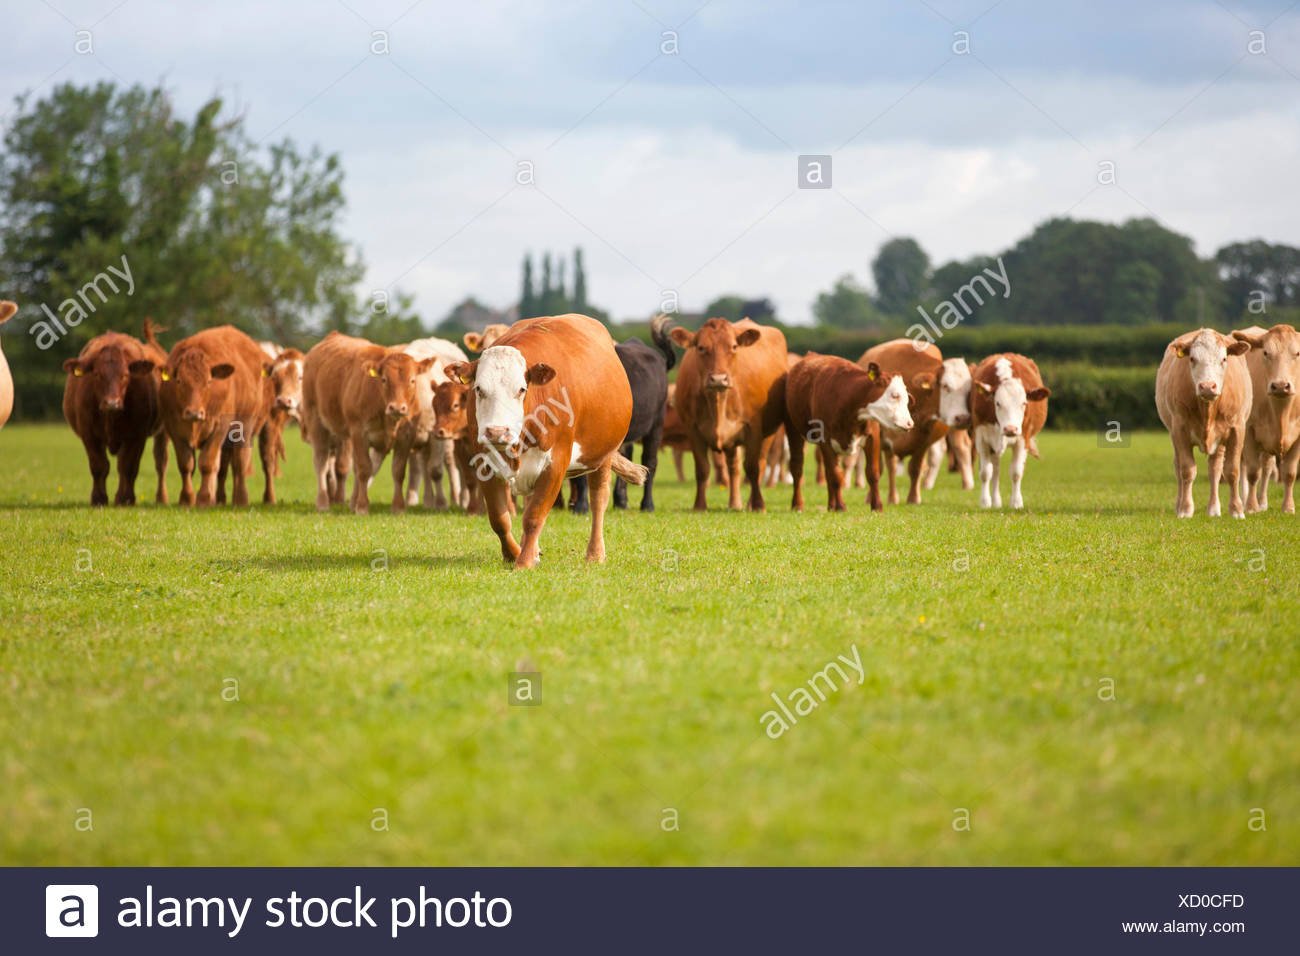 Portrait of herd of cows in sunny rural field - Stock Image